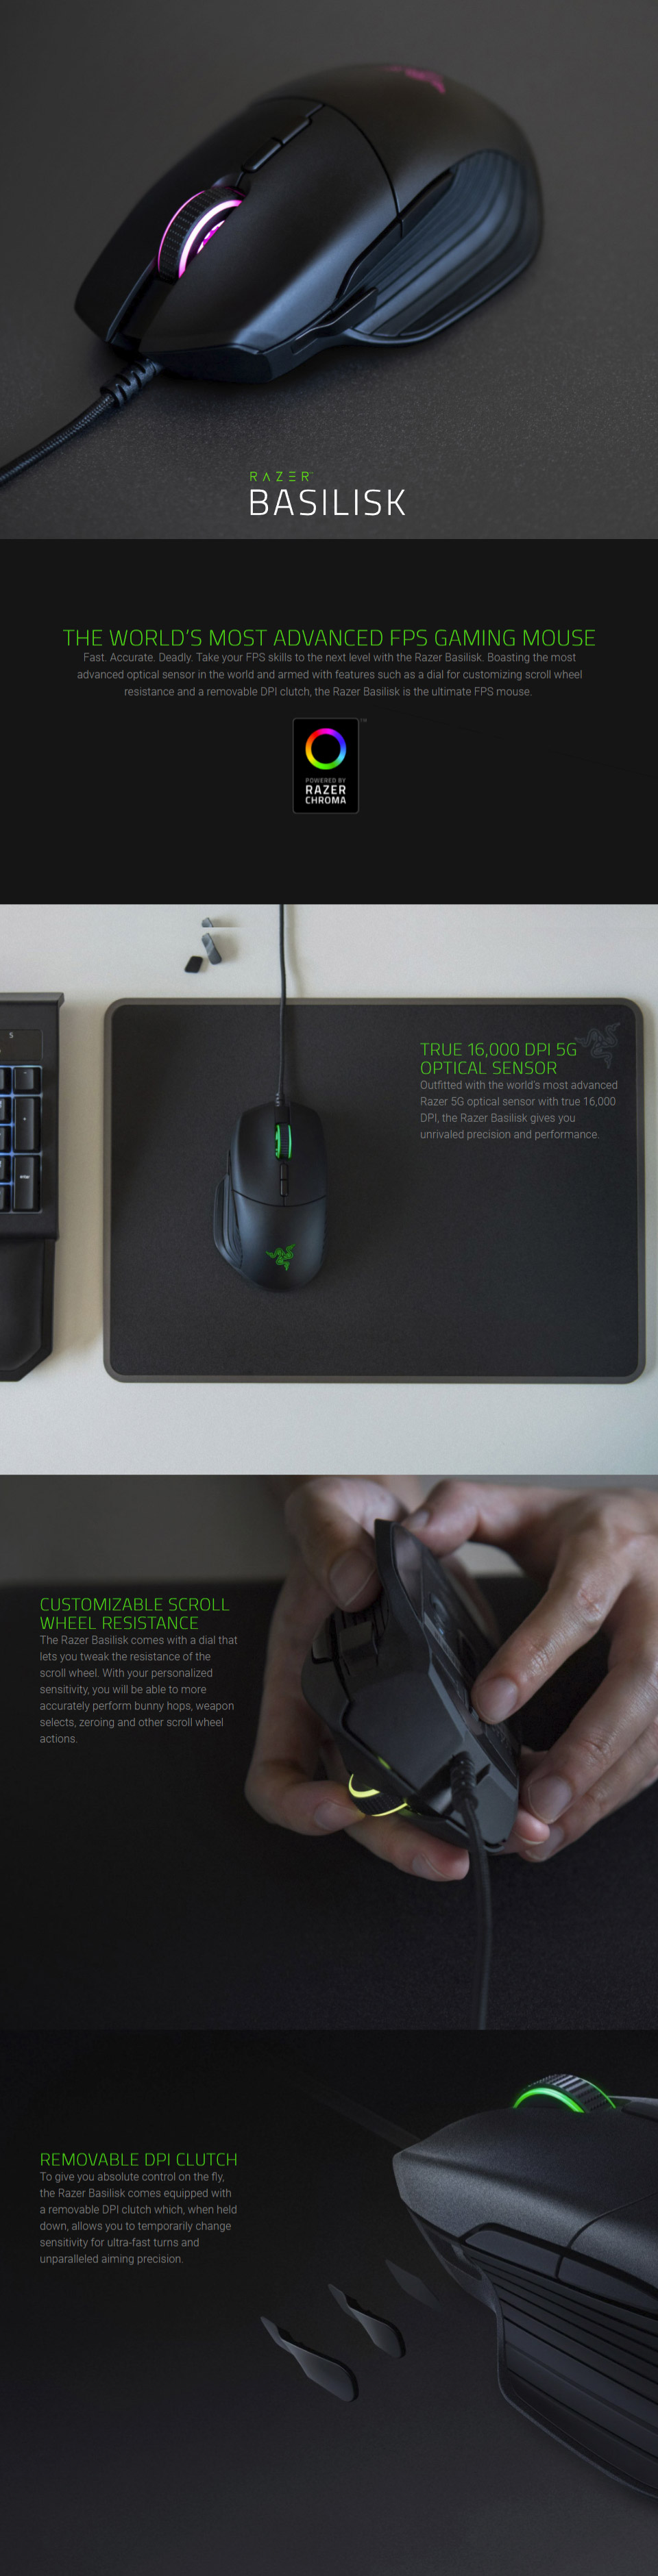 e63a8cd2d2d ... and armed with features such as a dial for customising scroll wheel  resistance and a removable DPI clutch, the Razer Basilisk is the ultimate FPS  mouse.